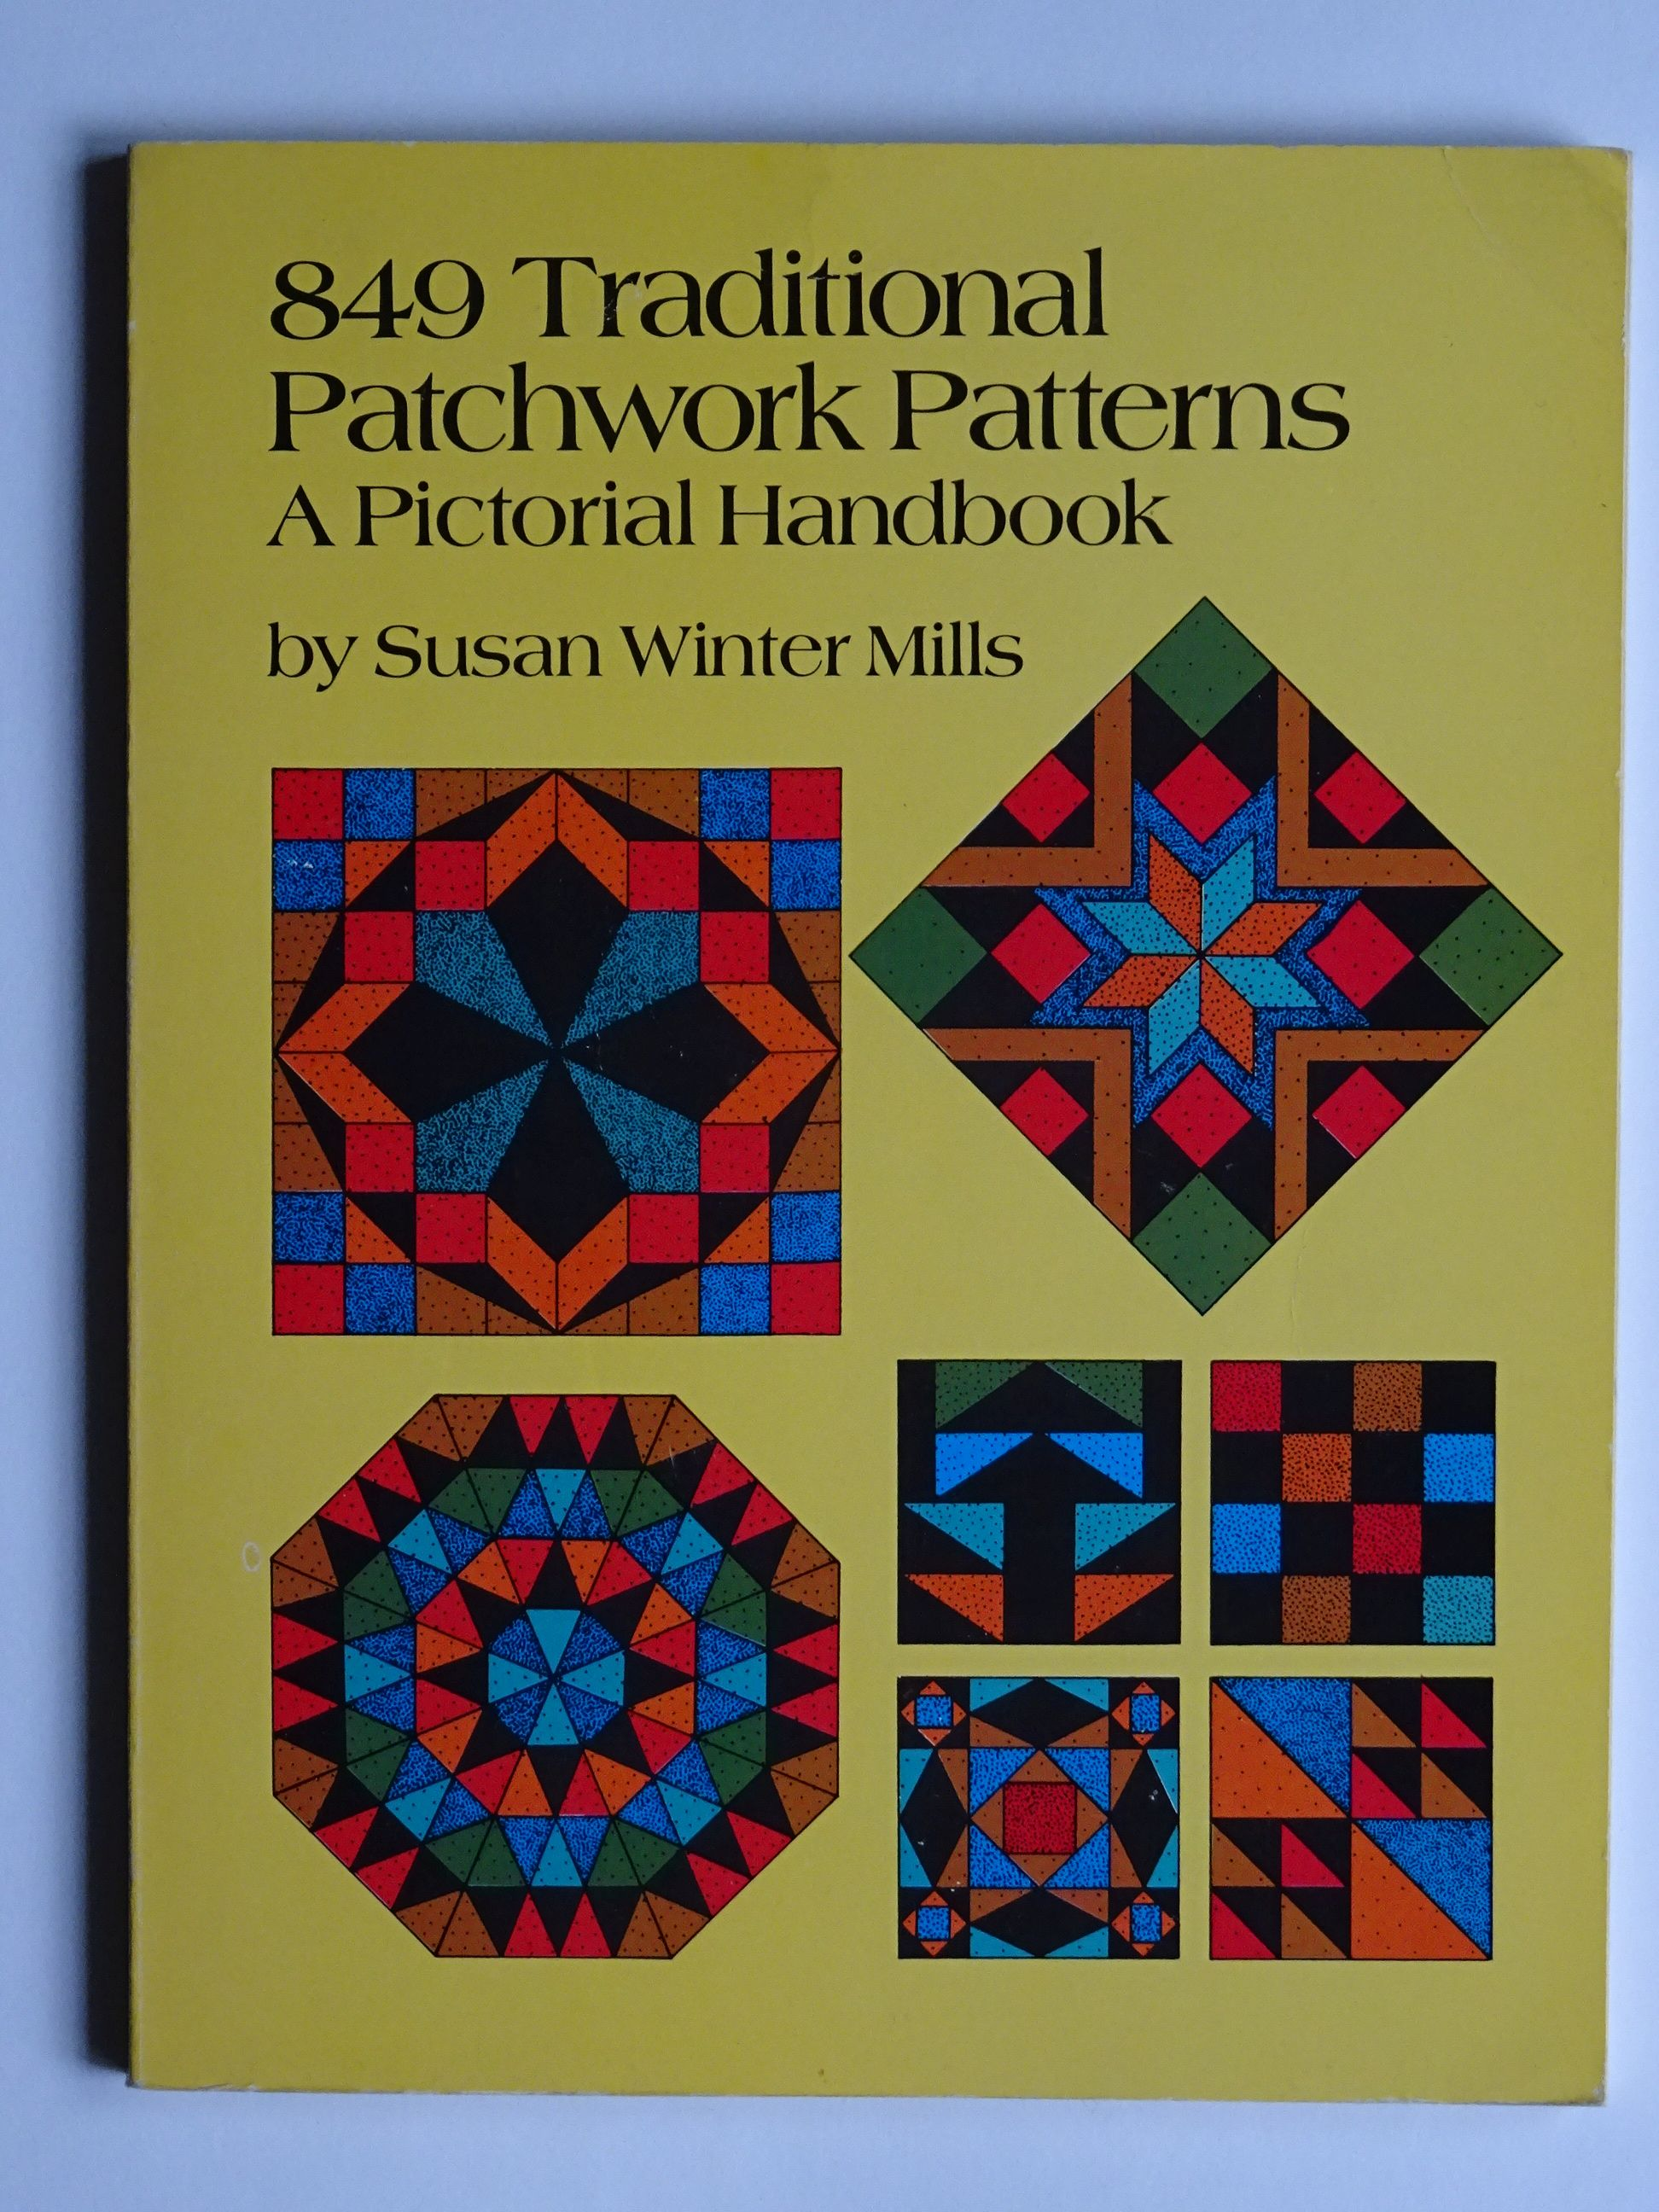 Mills, Susan Winter -  849 Traditional Patchwork Patterns A pictorial Handbook